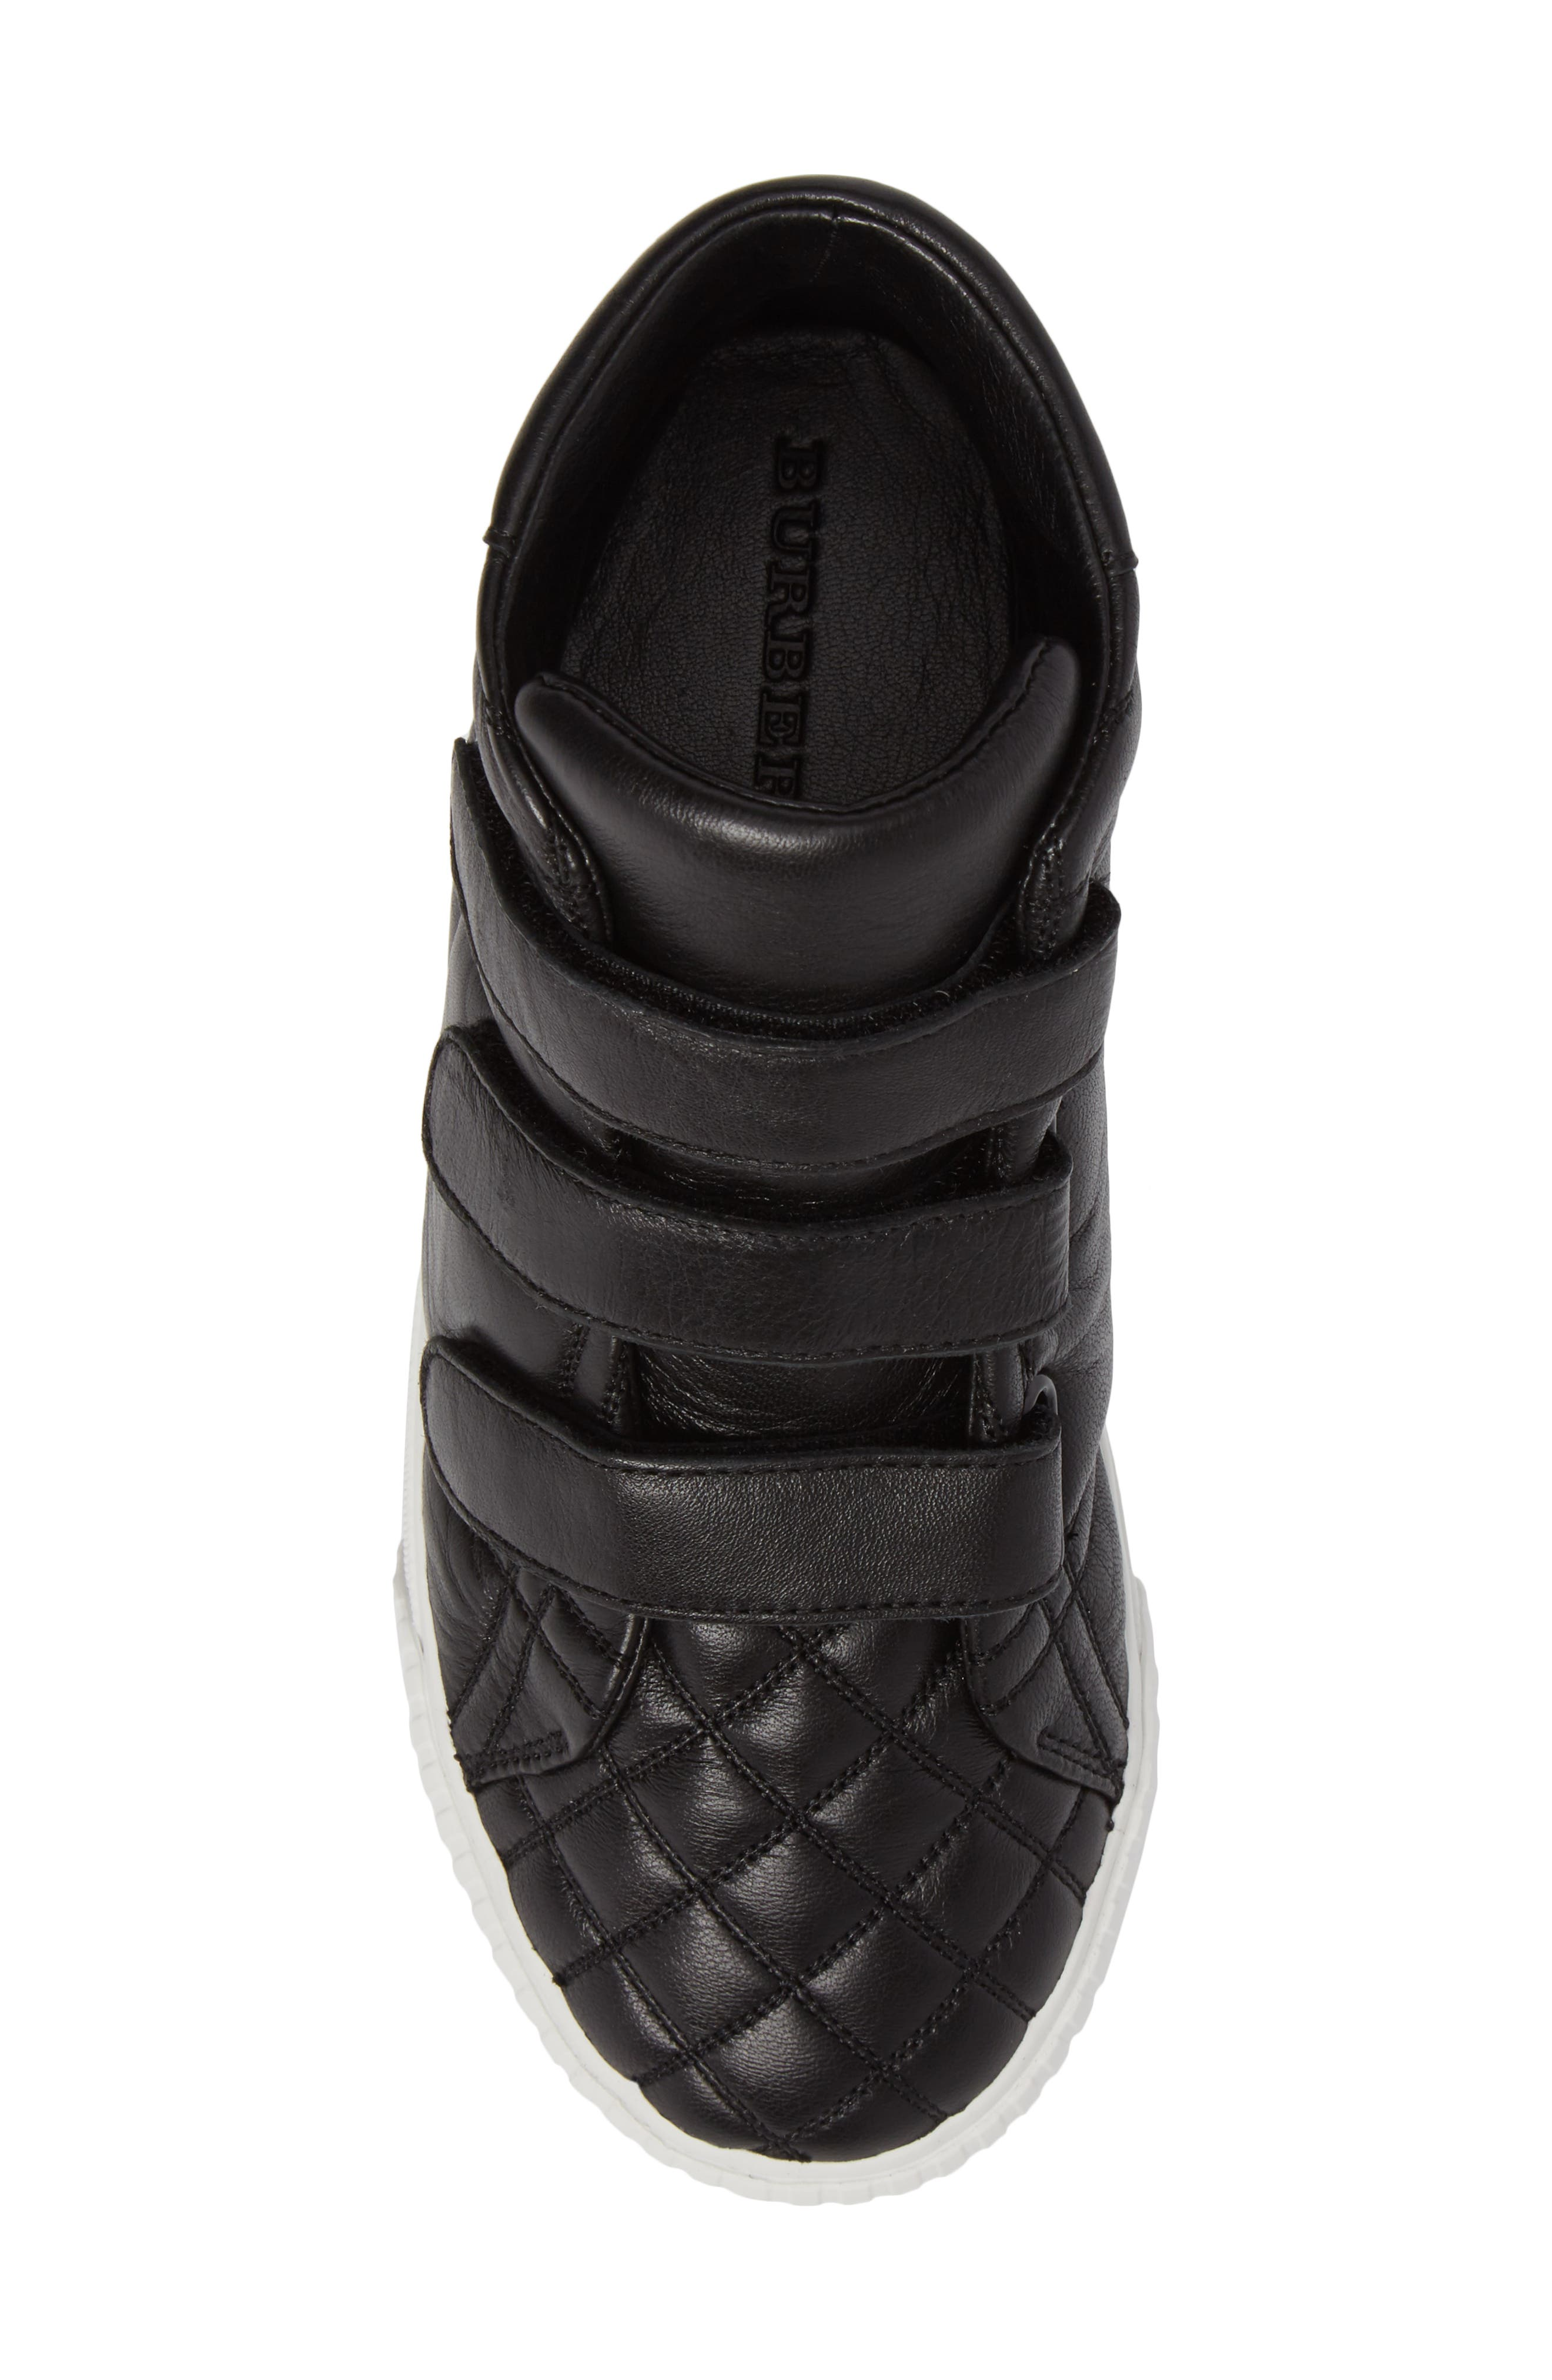 Sturrock Quilted High Top Sneaker,                             Alternate thumbnail 5, color,                             001